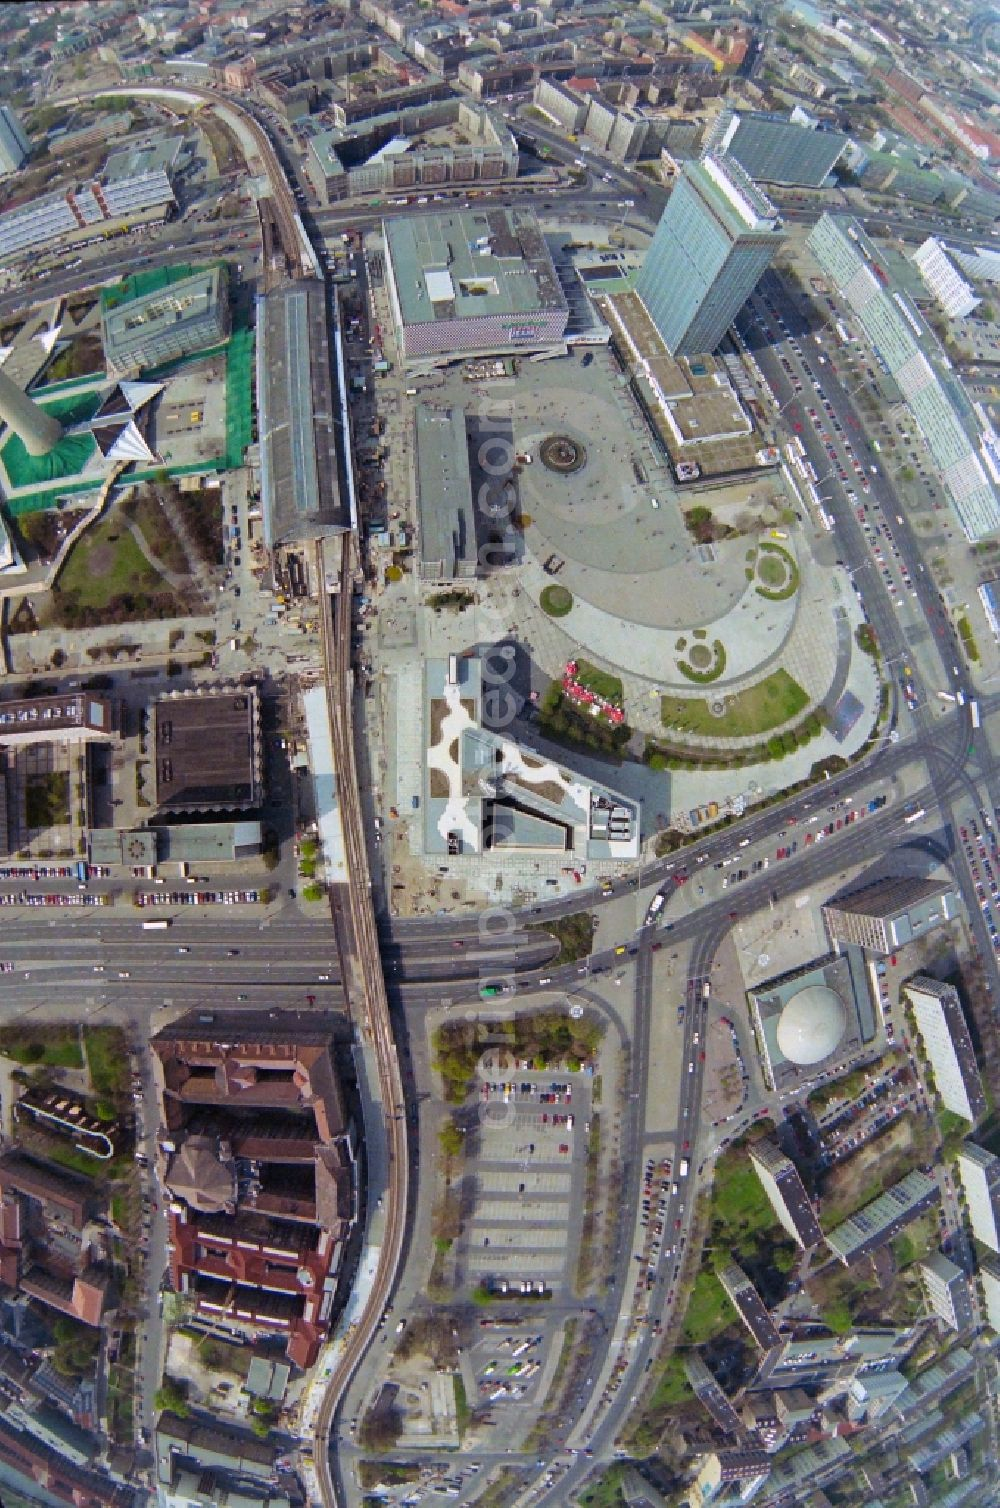 Berlin from the bird's eye view: Ensemble space Alexanderplatz - Otto-Braun-Strasse - Rathausstrasse in the inner city center in the district Mitte in Berlin, Germany